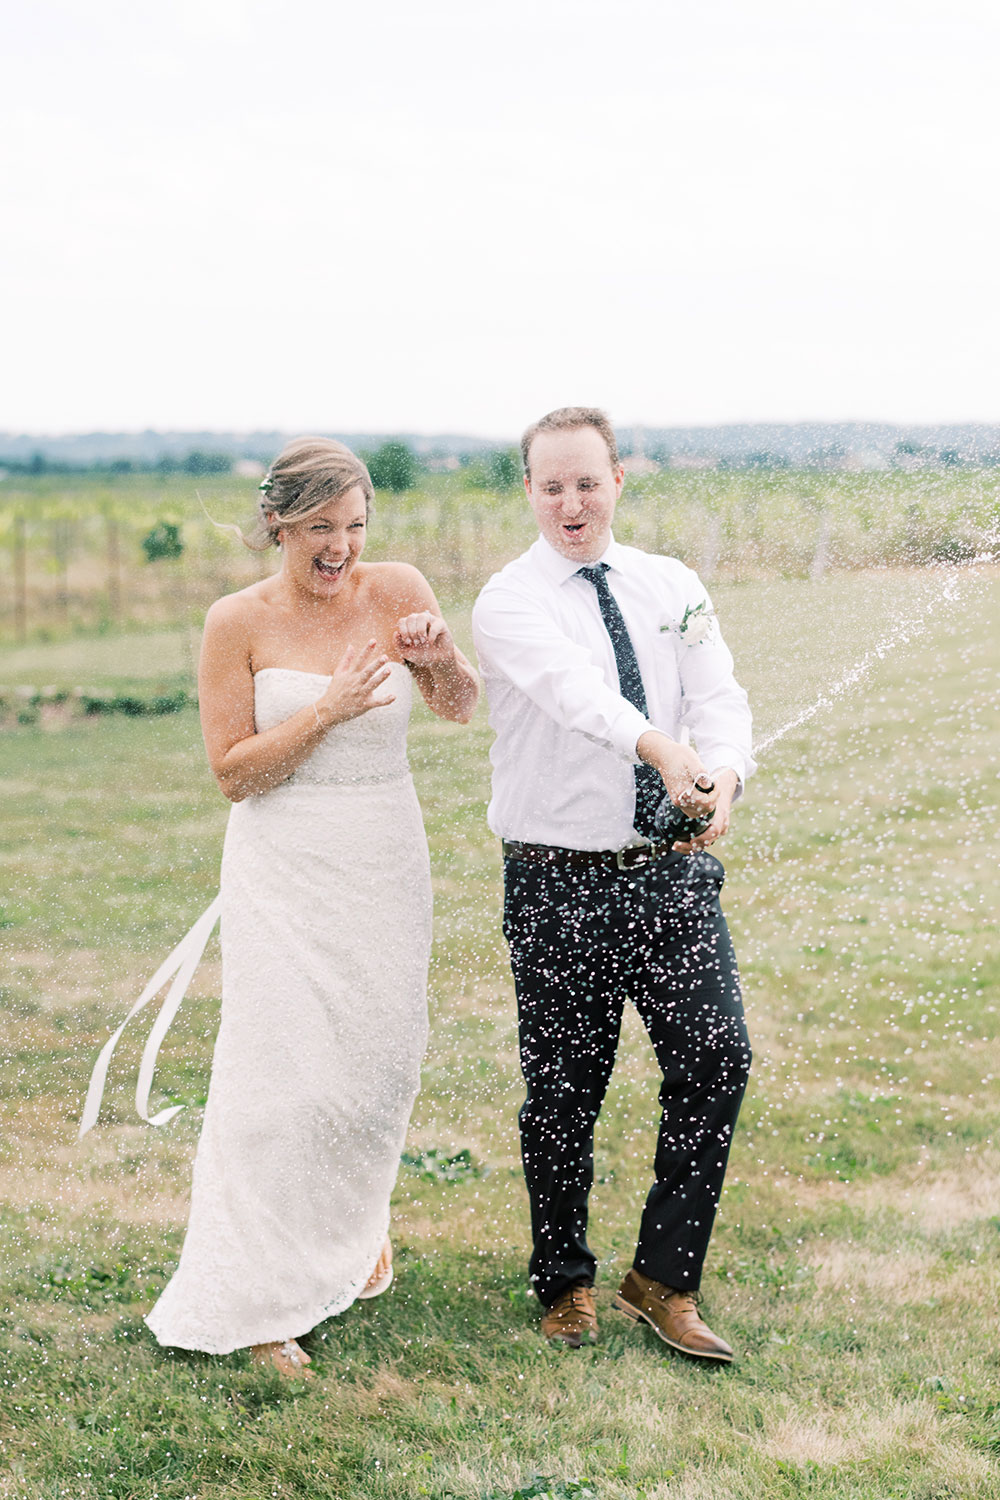 Niagara-on-the-Lake-Elopement-Vineyard-Bride-photo-by-Emily-Jean-Photography-0019.JPG